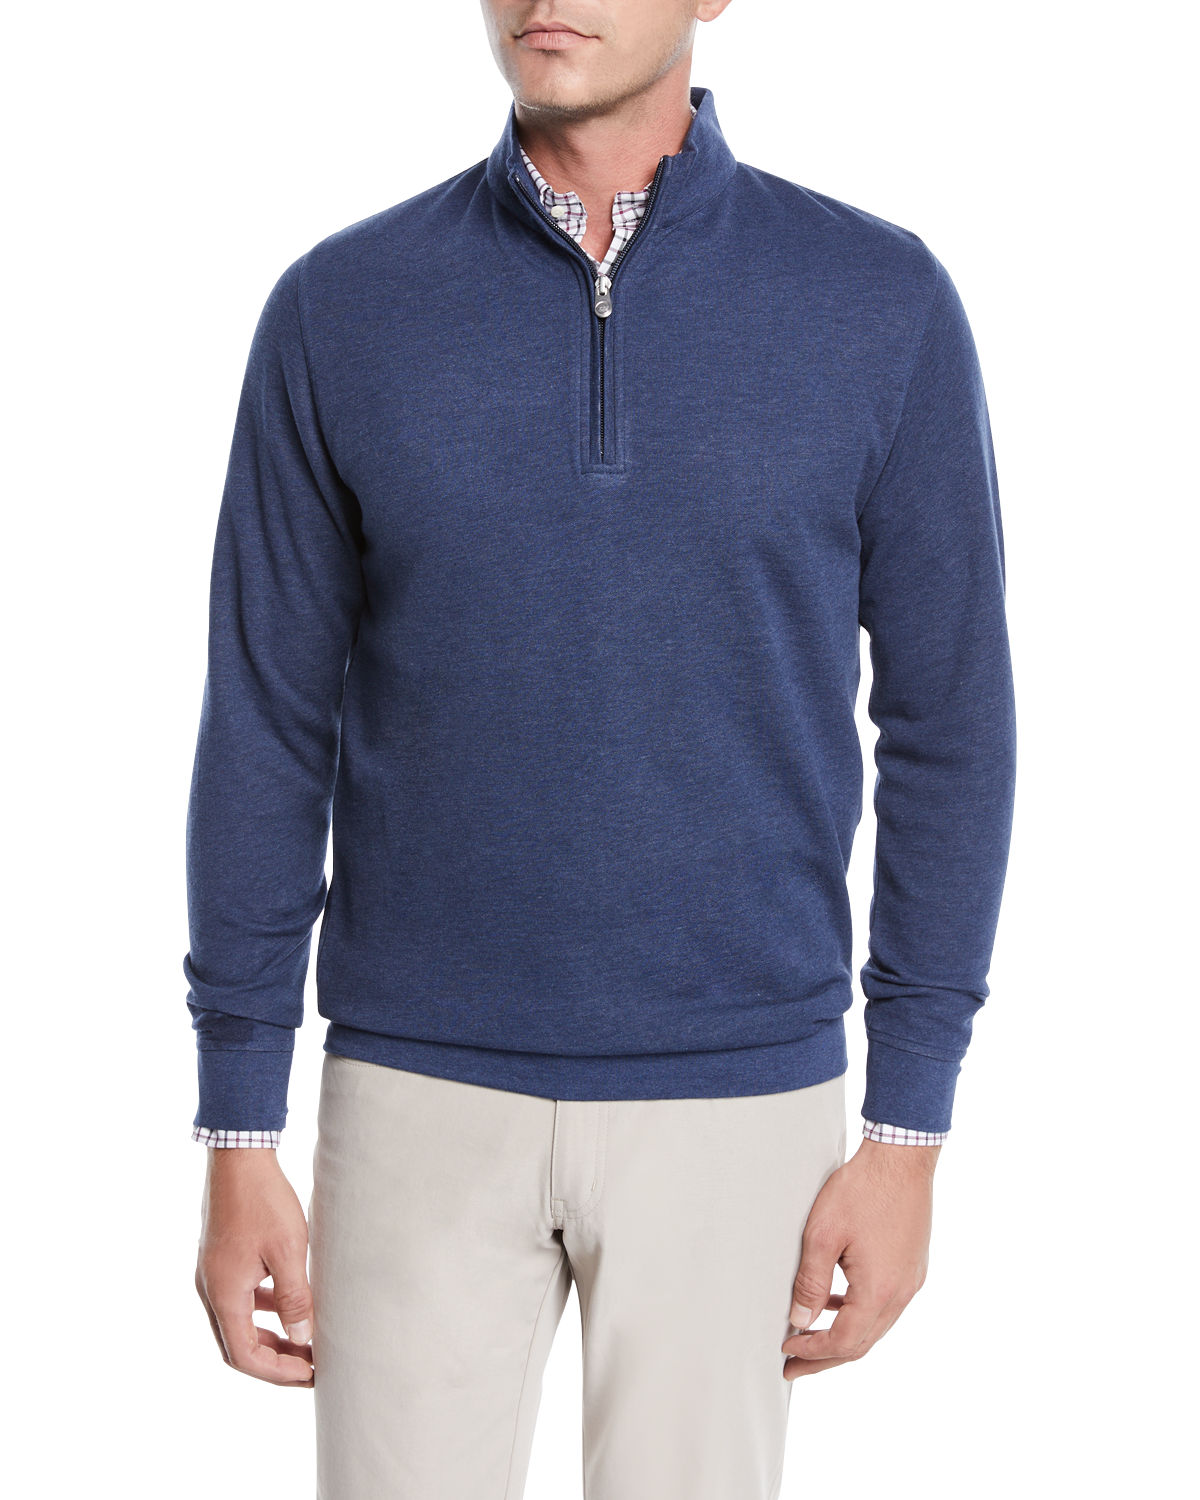 Men's Crown Comfort Quarter-Zip Sweater